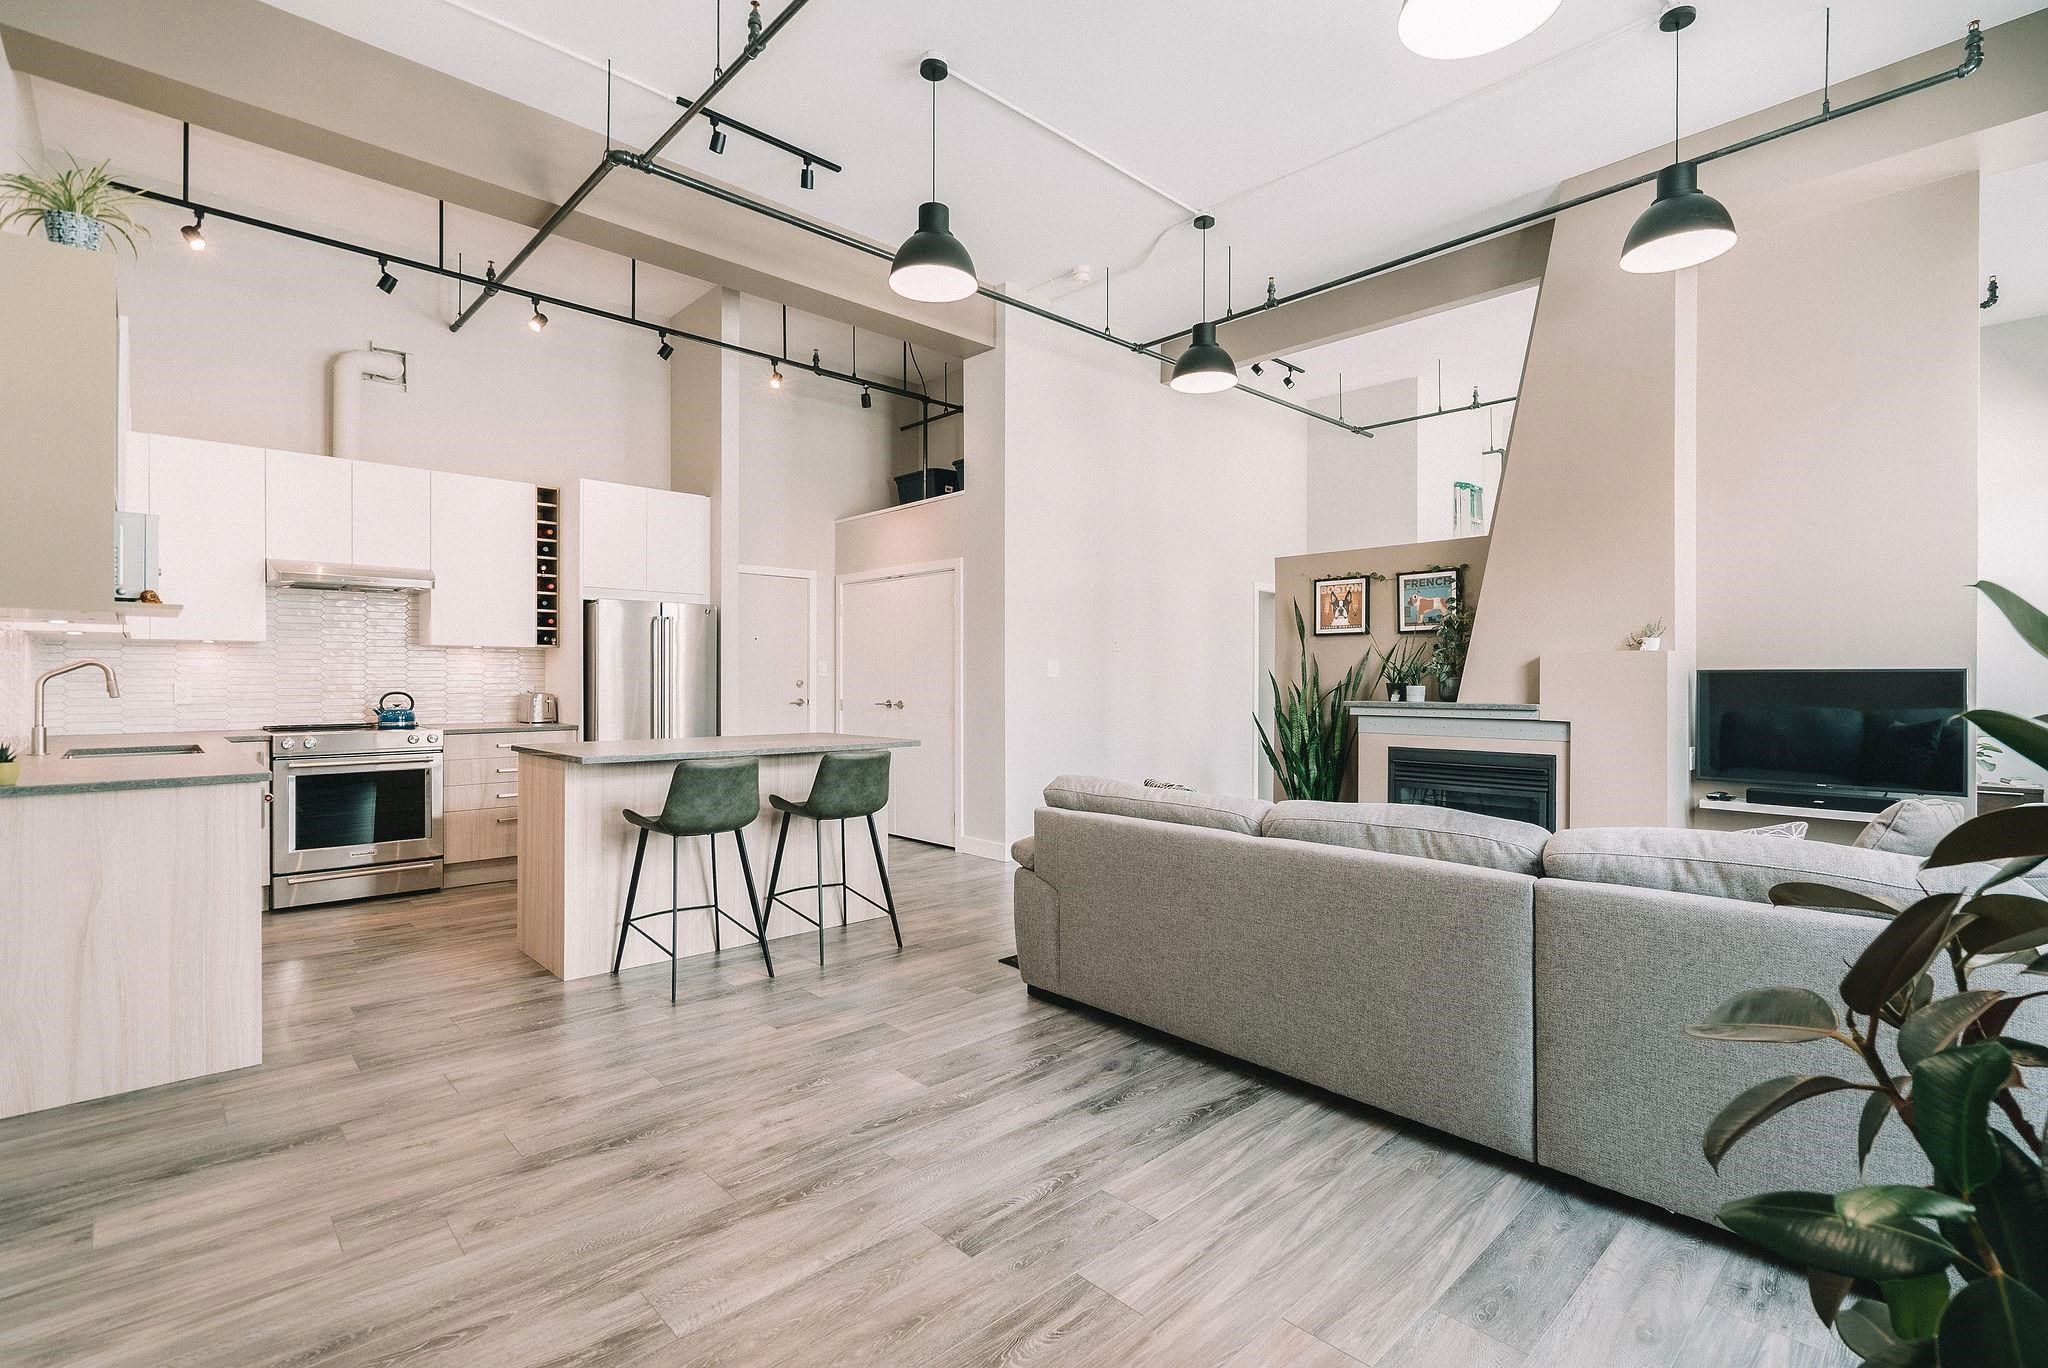 """Main Photo: 415 549 COLUMBIA Street in New Westminster: Downtown NW Condo for sale in """"C2C Lofts"""" : MLS®# R2614838"""